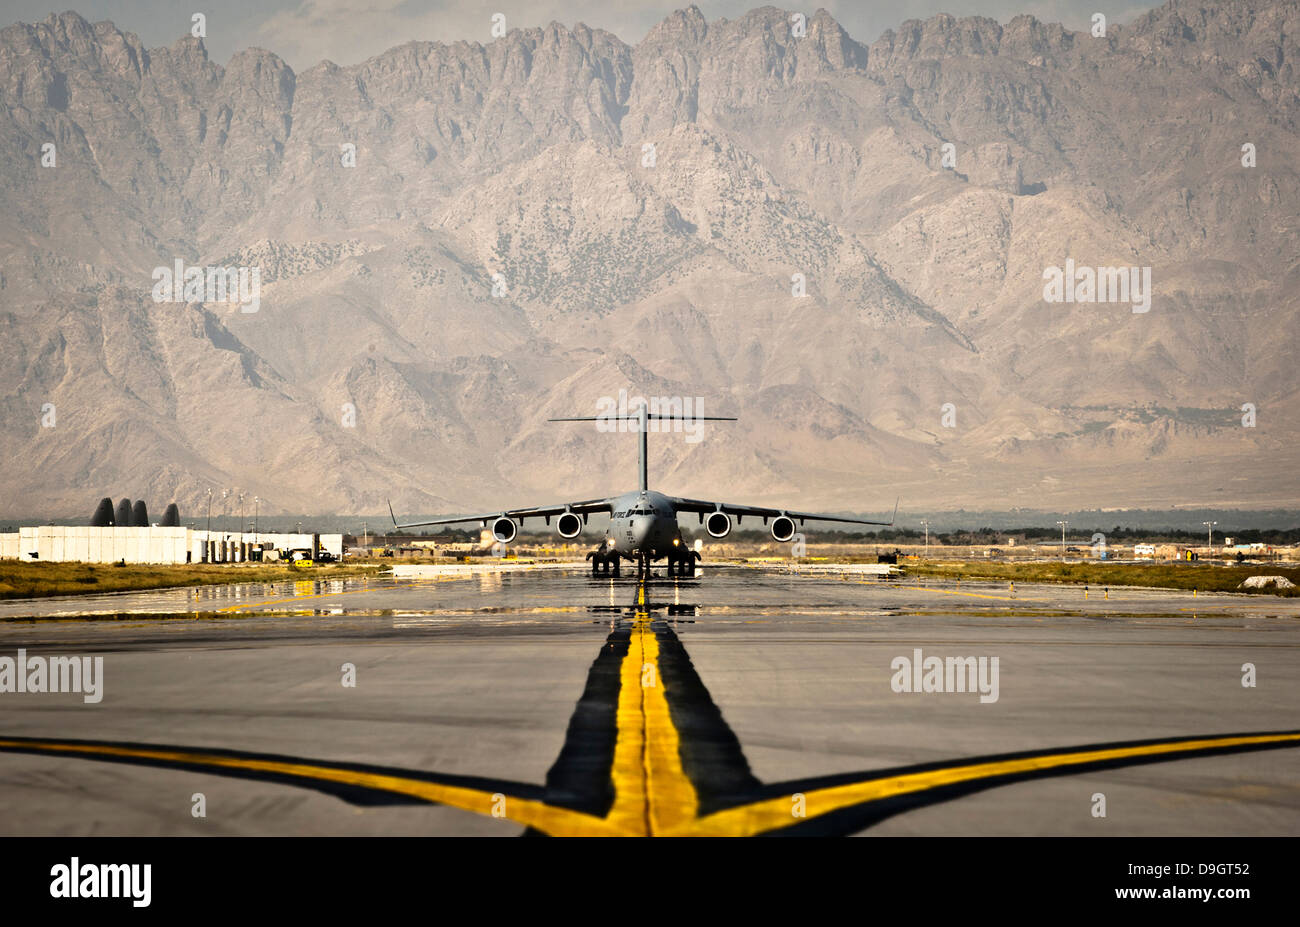 September 25, 2012 - A C-17 Globemaster III taxis to its parking spot at Bagram Airfield, Afghanistan. - Stock Image